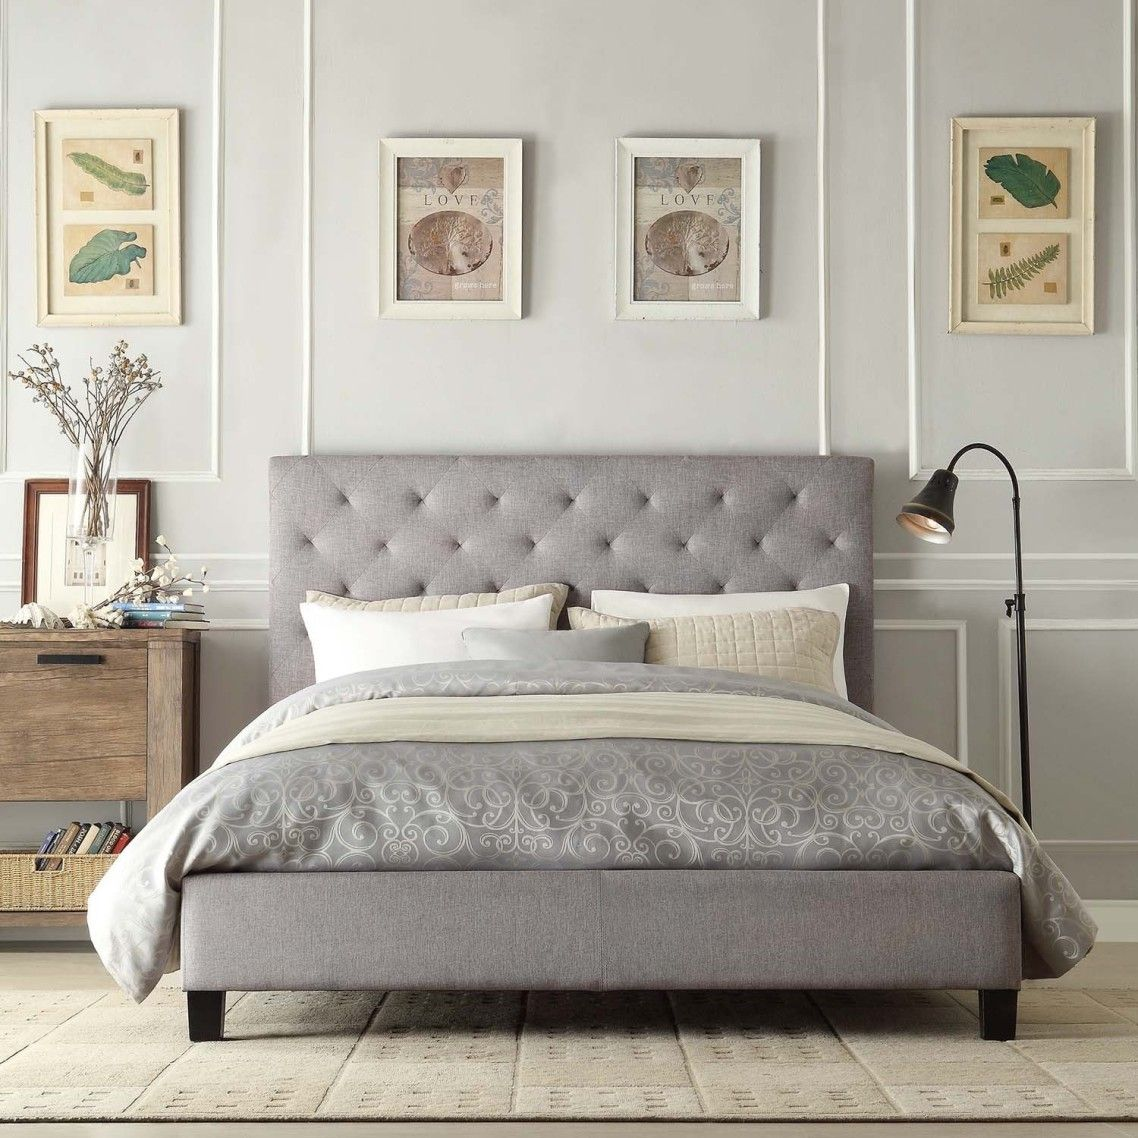 Light Gray Dresser Diy Headboard With Storage Chic Queen